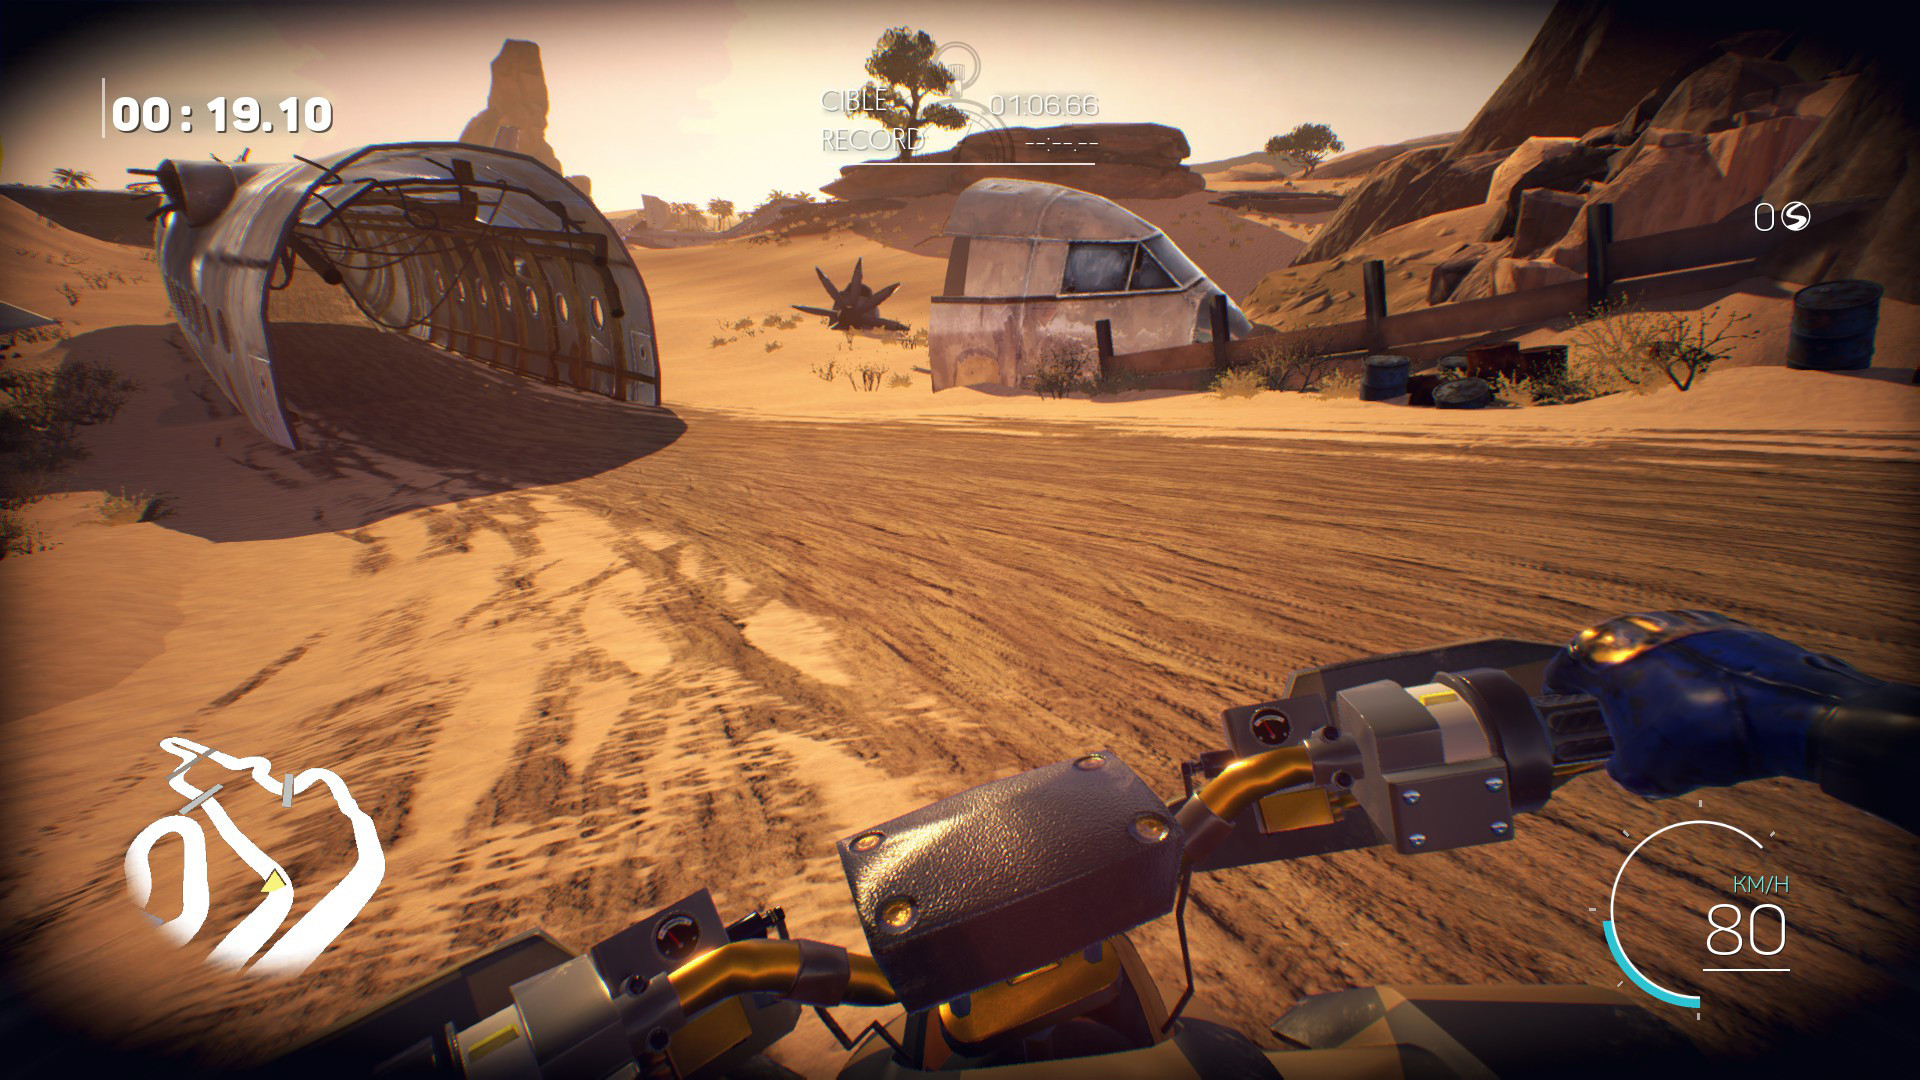 download atv drift and tricks cracked by codex include all dlc and latest update mirrorace multiup